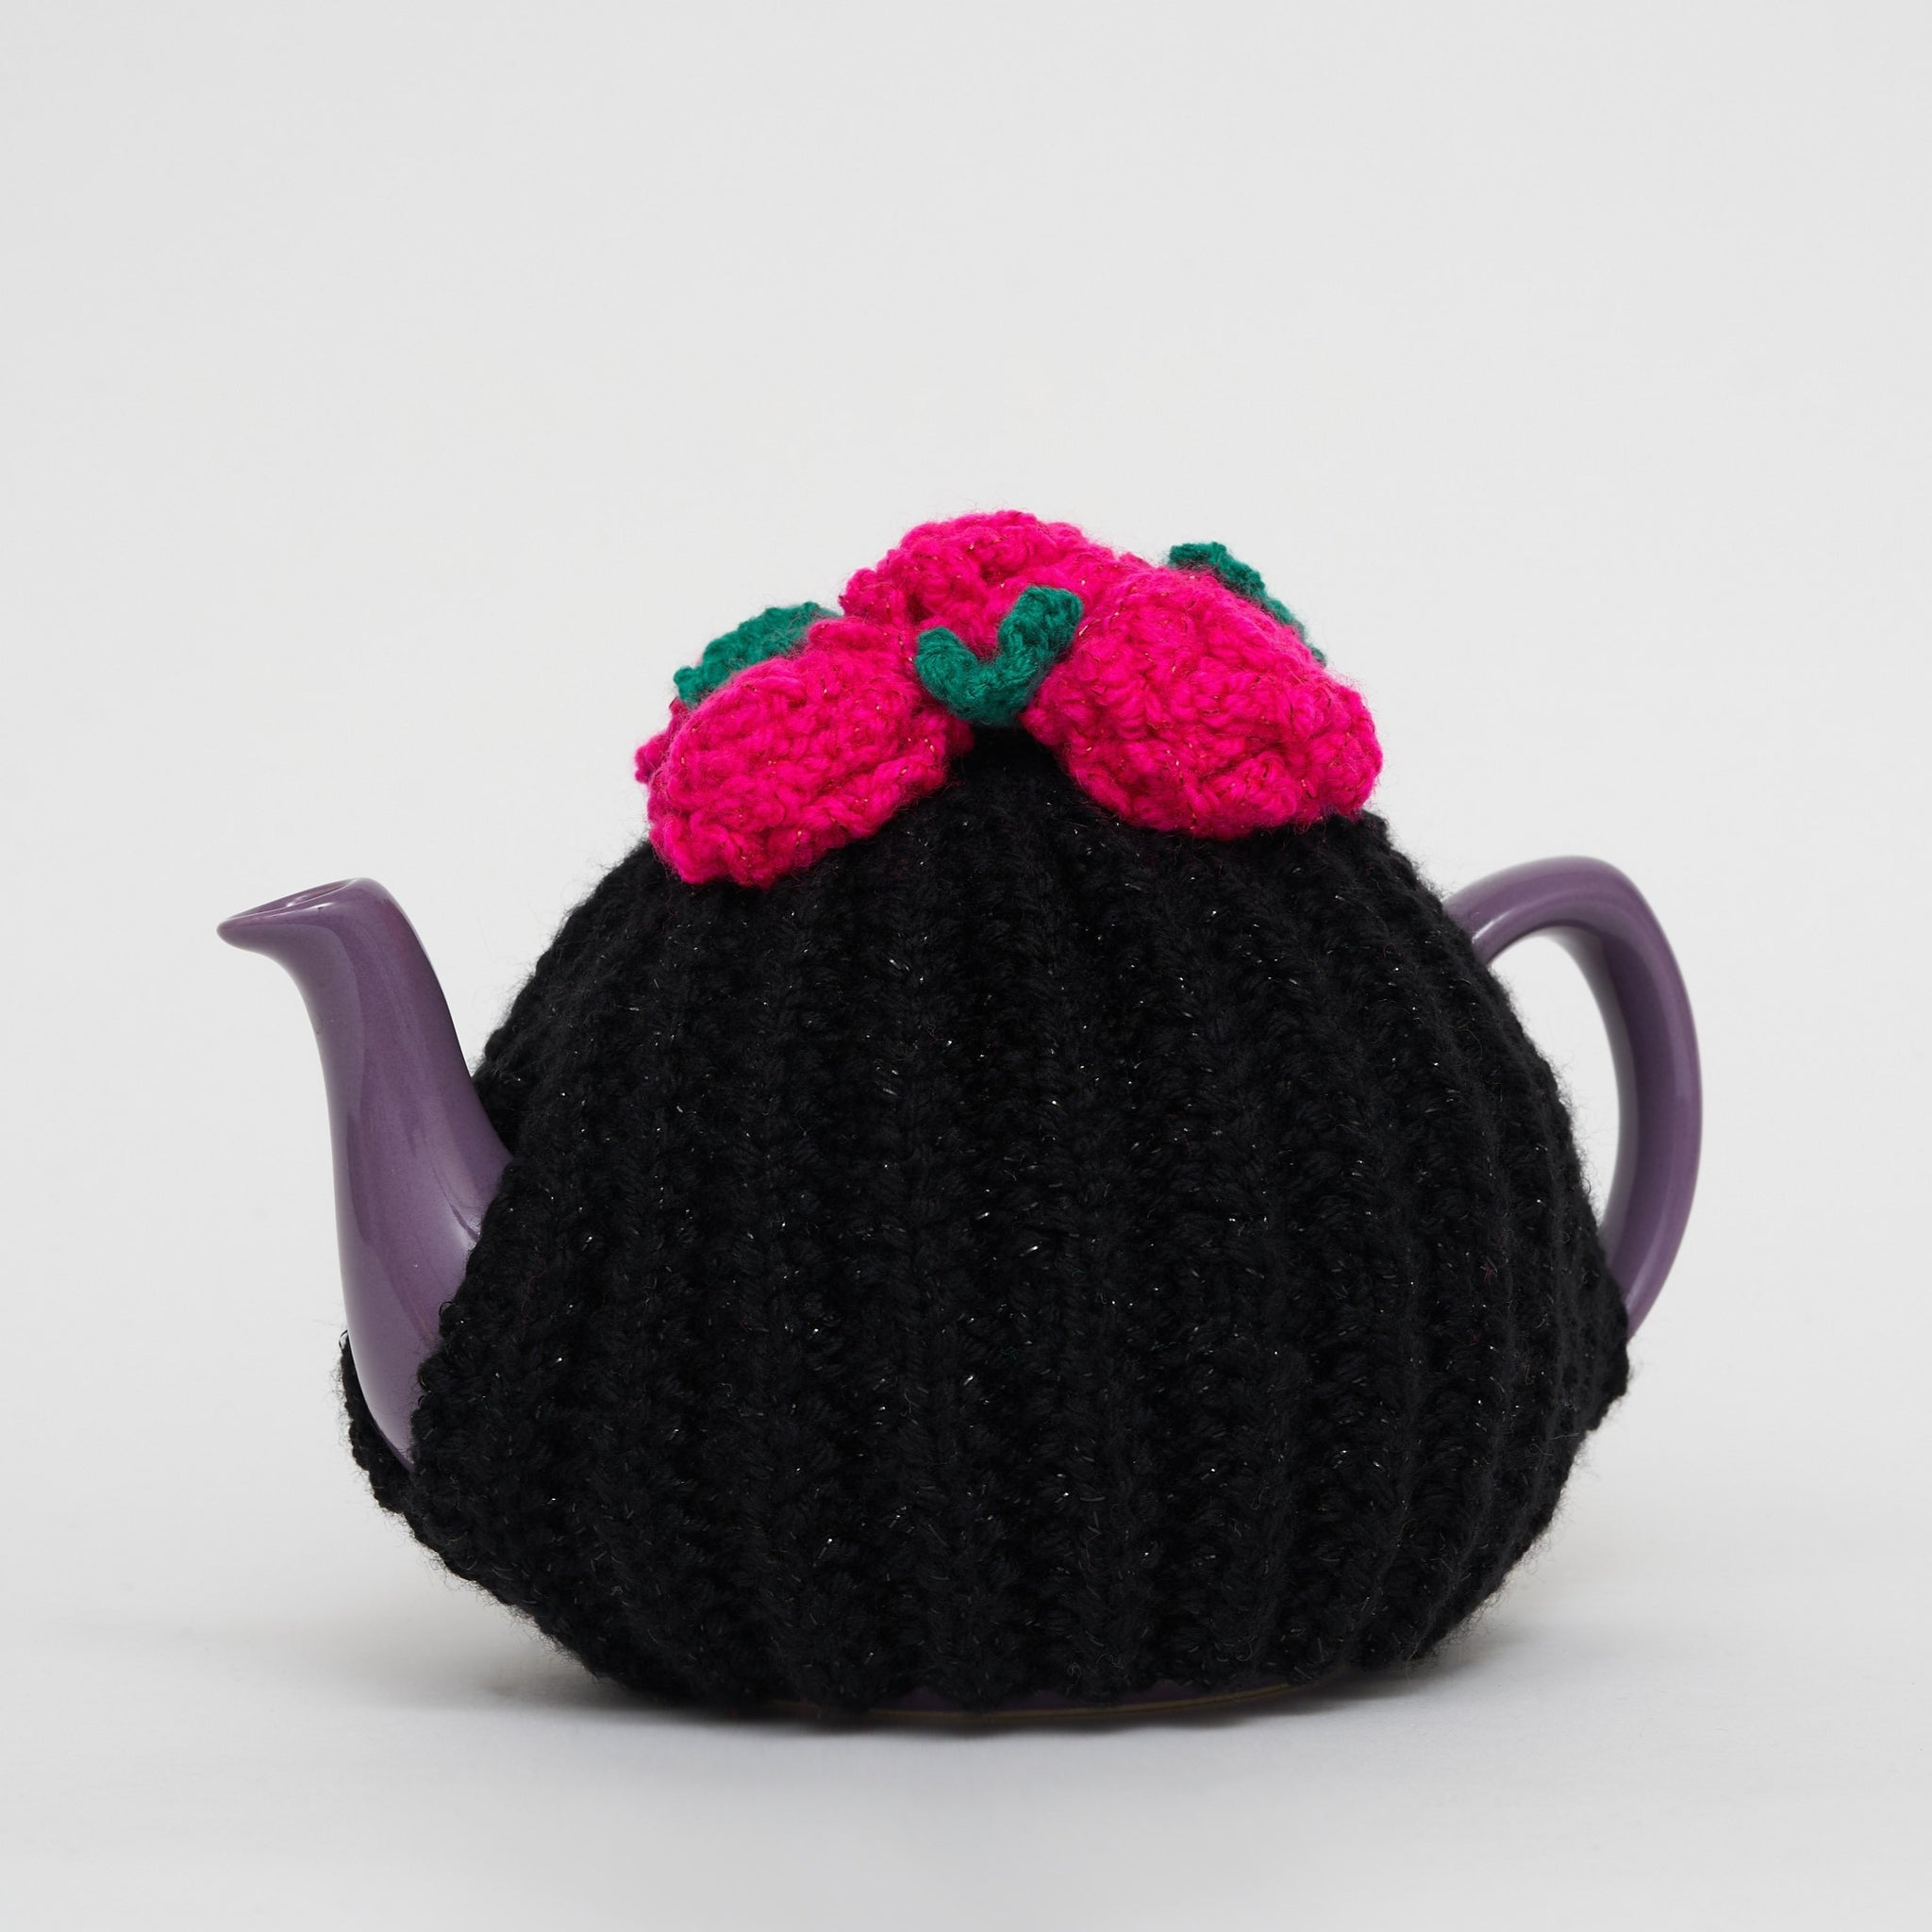 Eileen's Knitted Medium Tea Cosy in Black Glittery